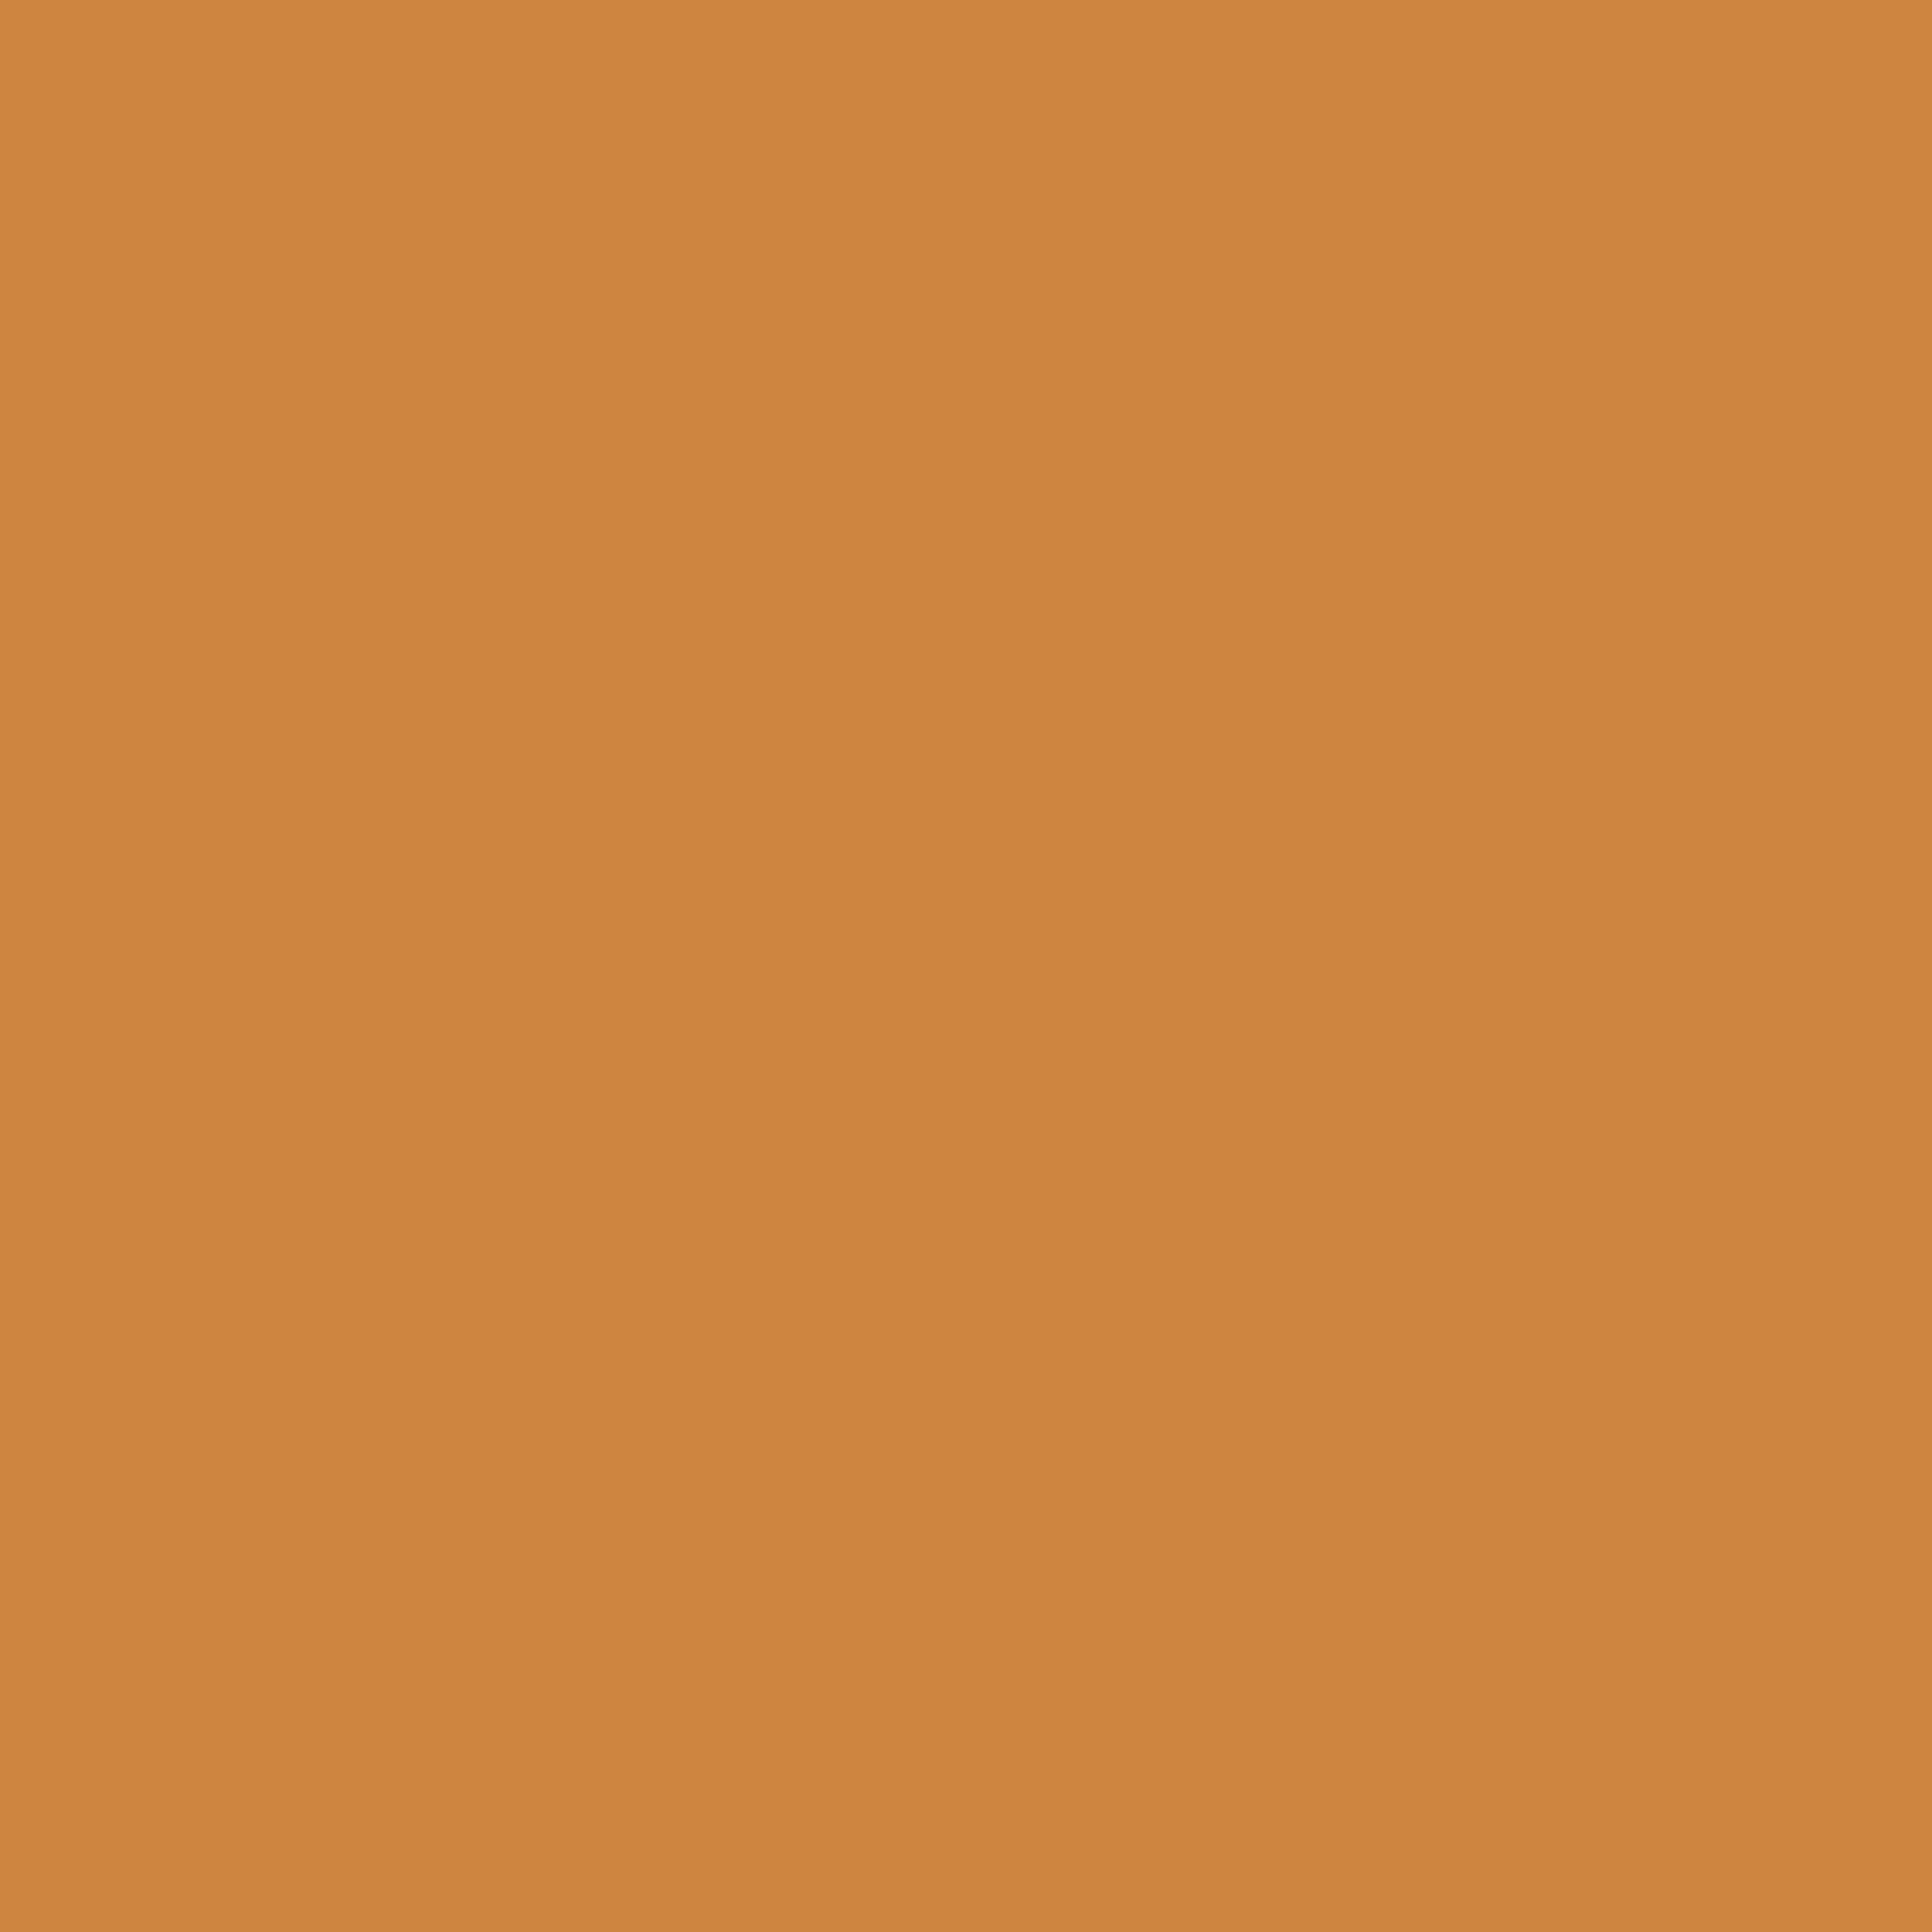 2732x2732 Peru Solid Color Background